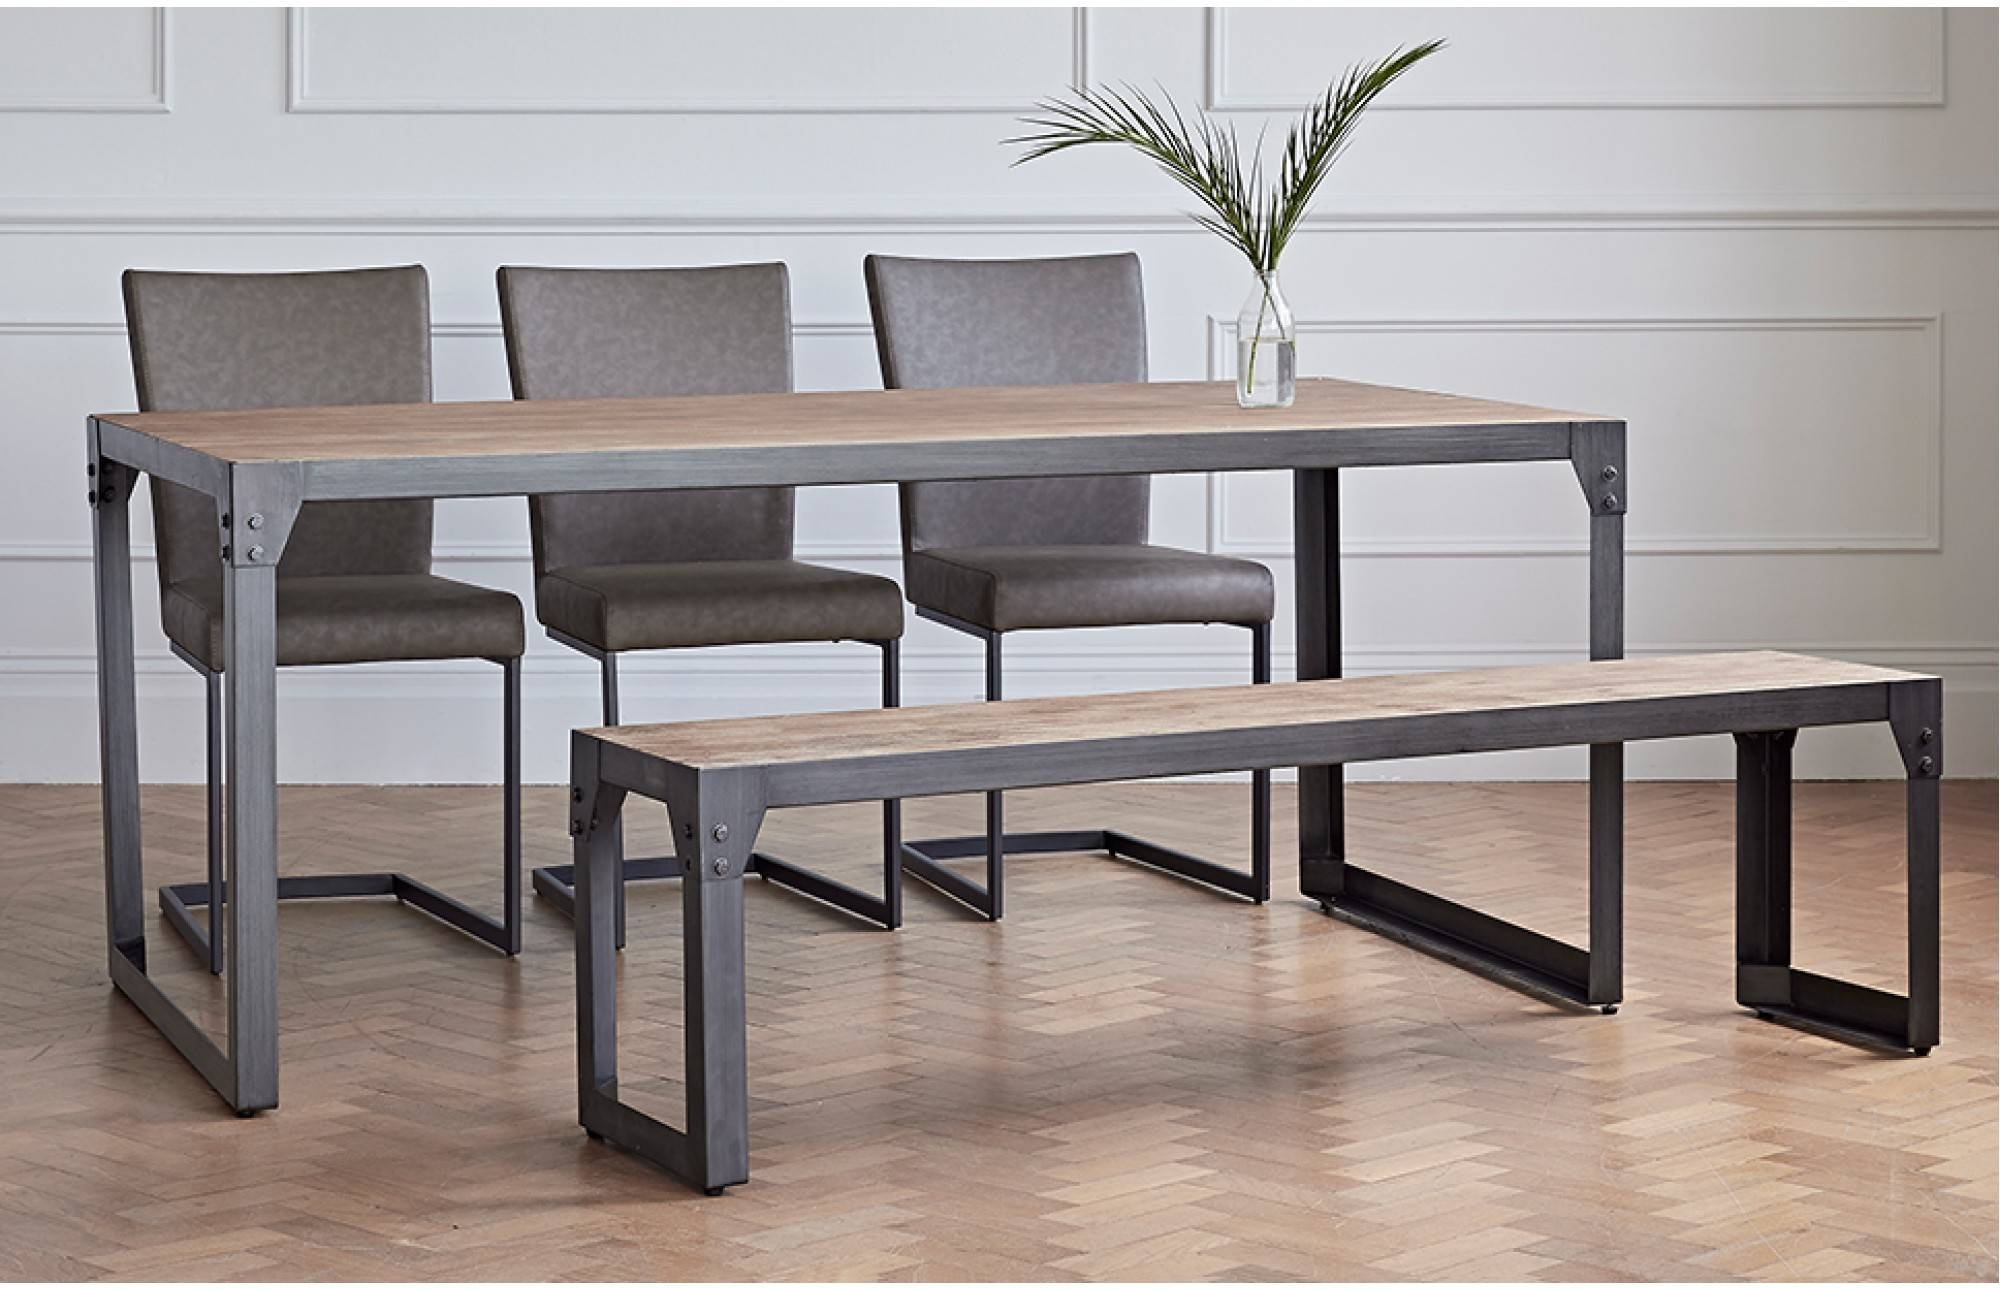 Varna Dining Set With 1 Bench And 3 Chairs for Dining Sofa Chairs (Image 13 of 15)